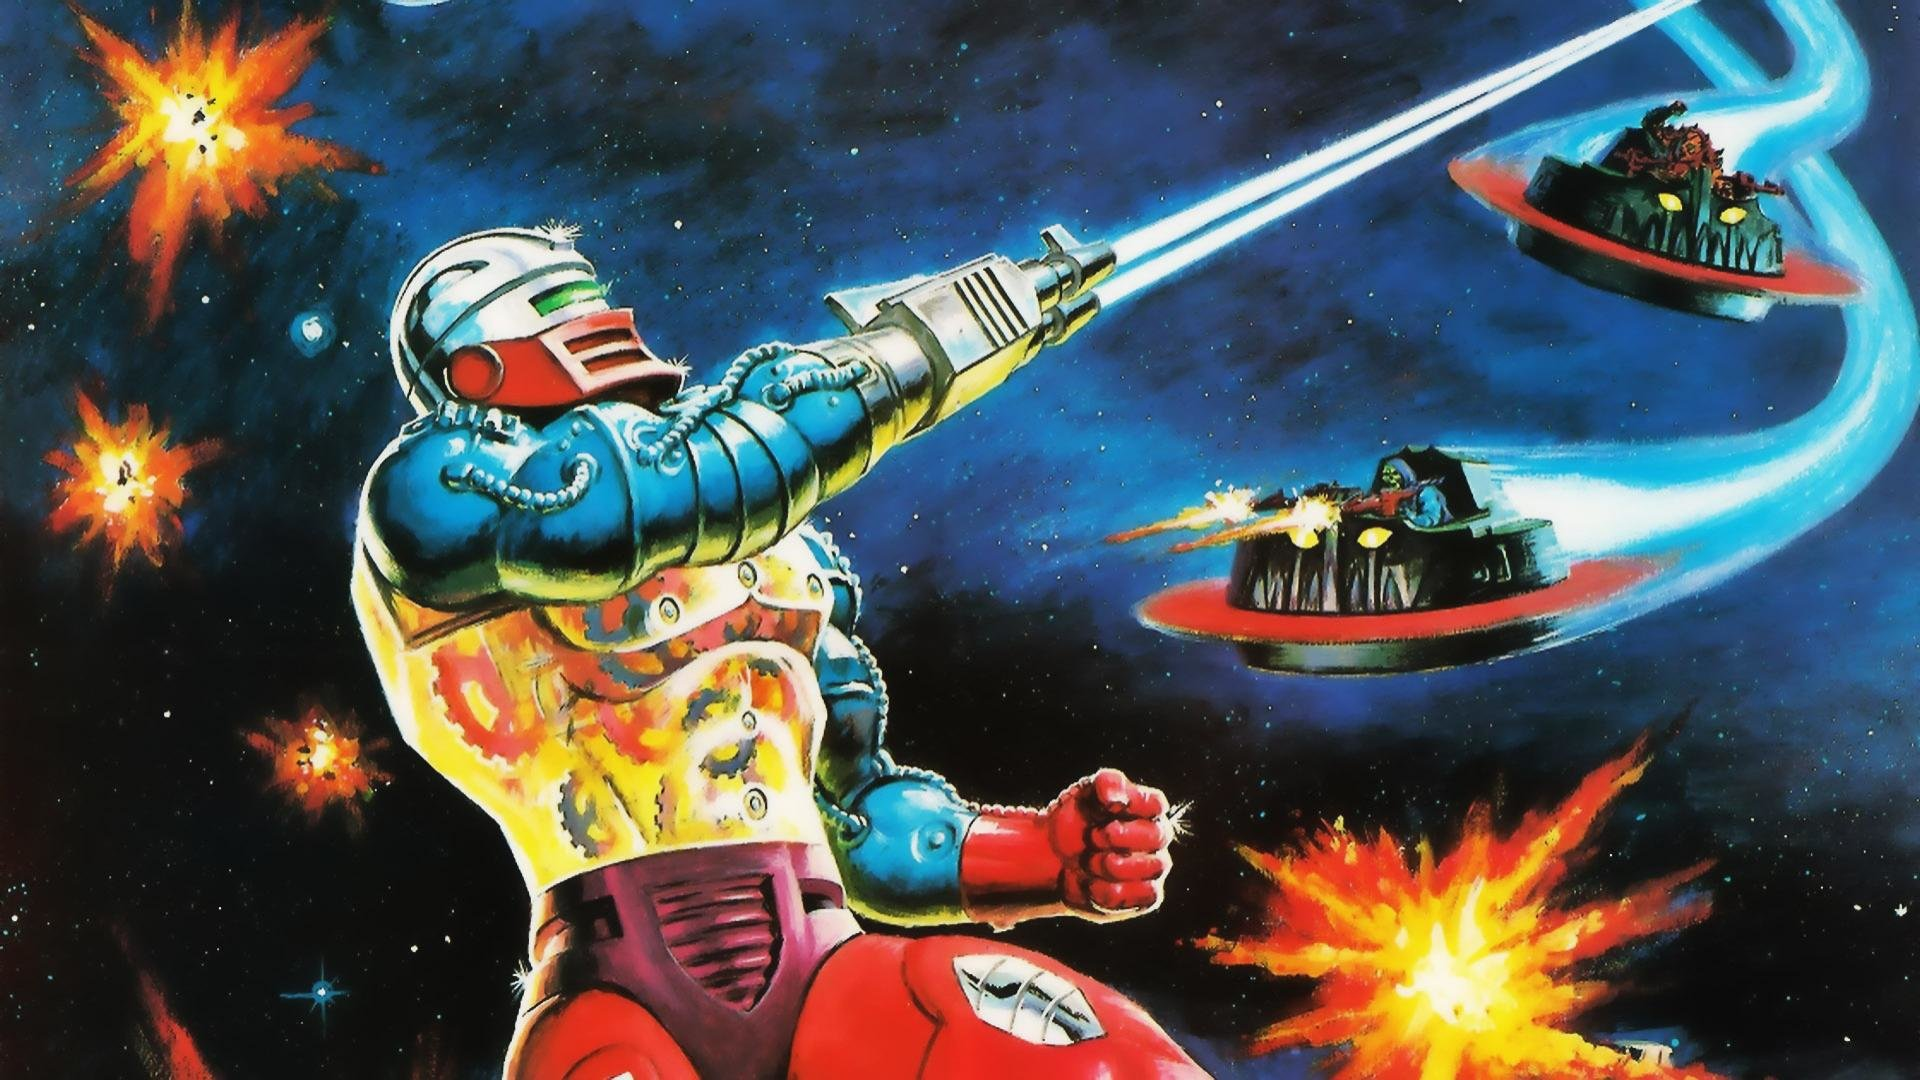 Free He Man And The Masters Of The Universe High Quality Wallpaper